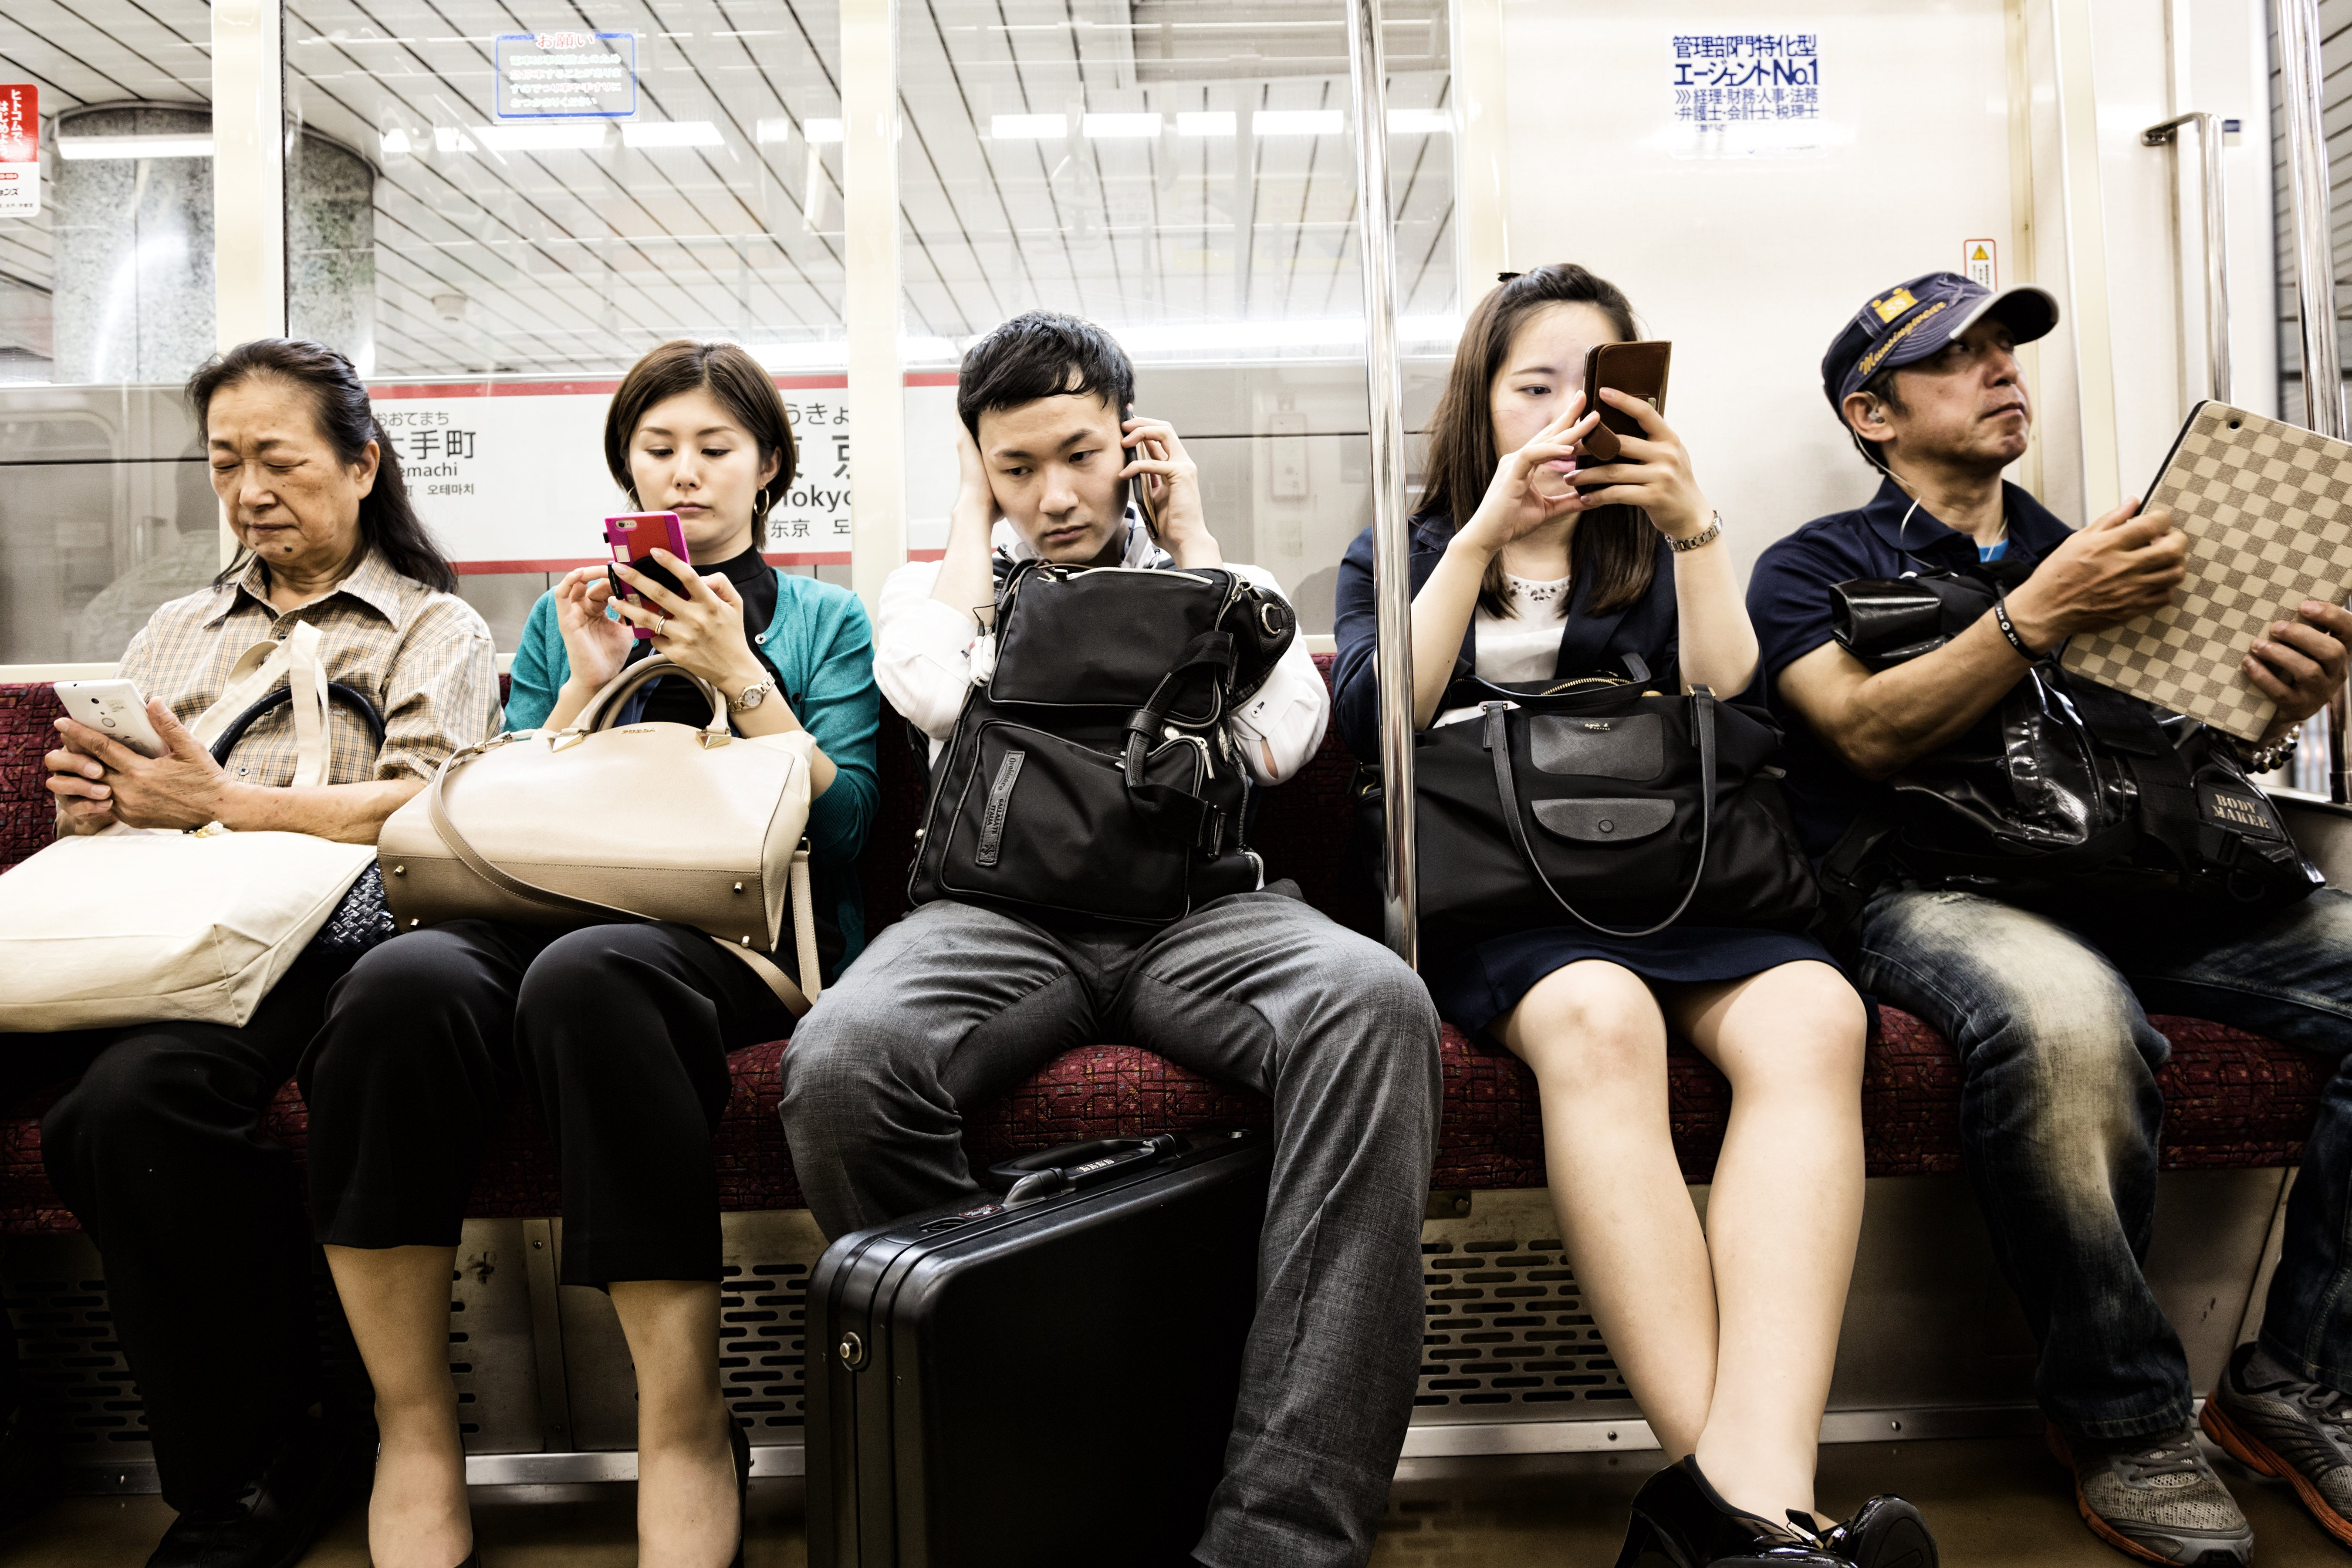 People sit in a bus | Photo: Shutterstock